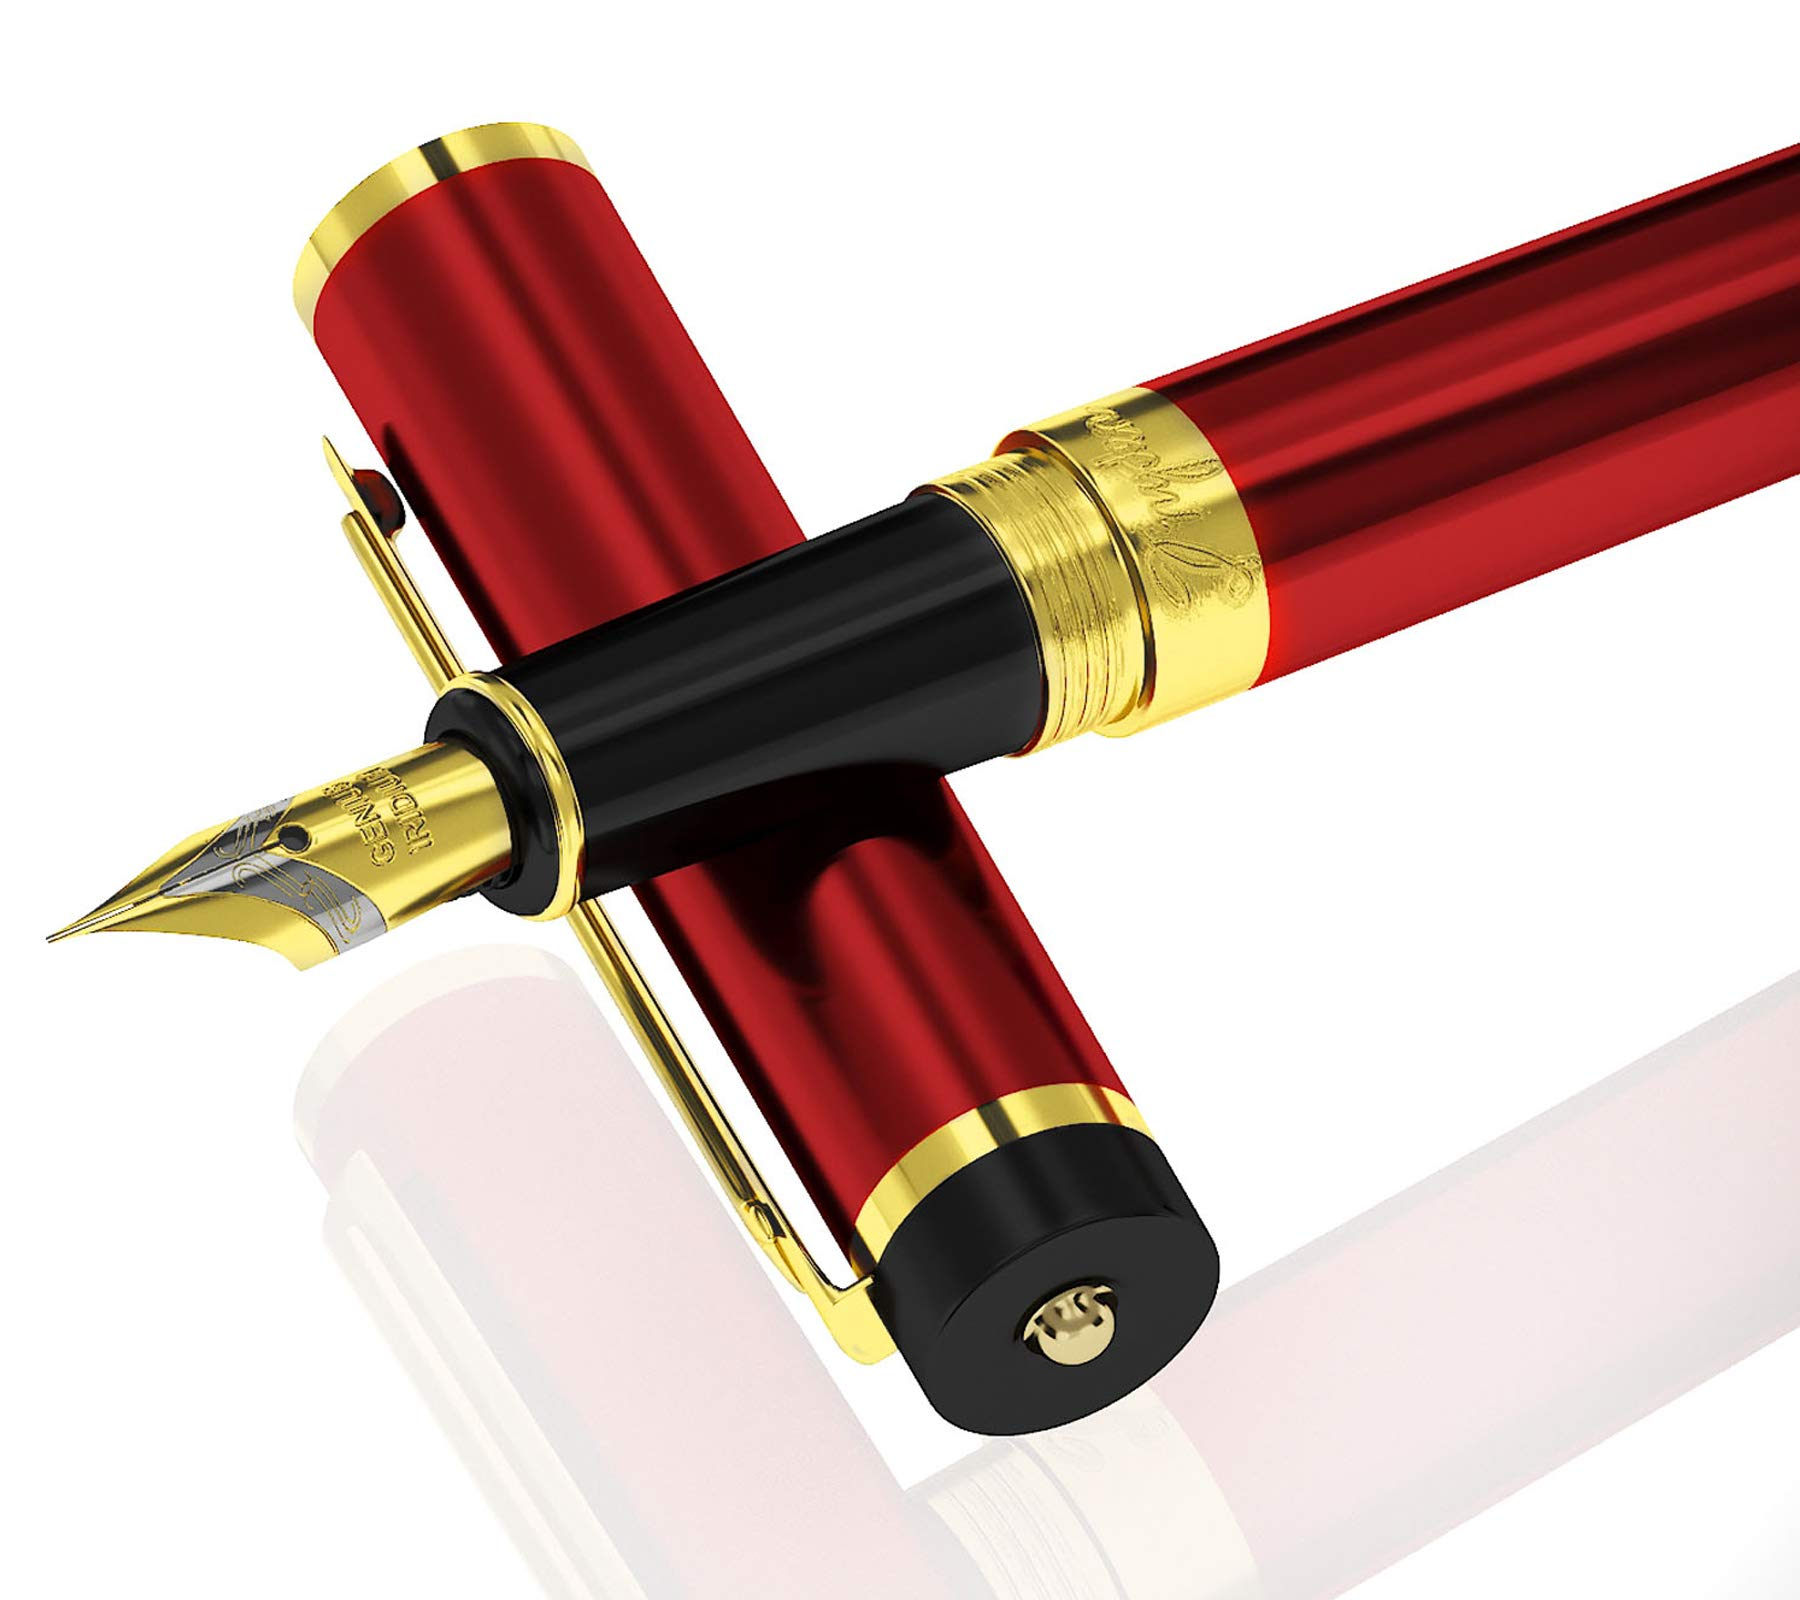 DRYDEN Luxury Fountain Pen with Ink Refill Converter - Smooth & Elegant, Perfect Gift Set for Calligraphy Writing, Signature, Journal, Artist and Professionals [DANGEROUS RED]